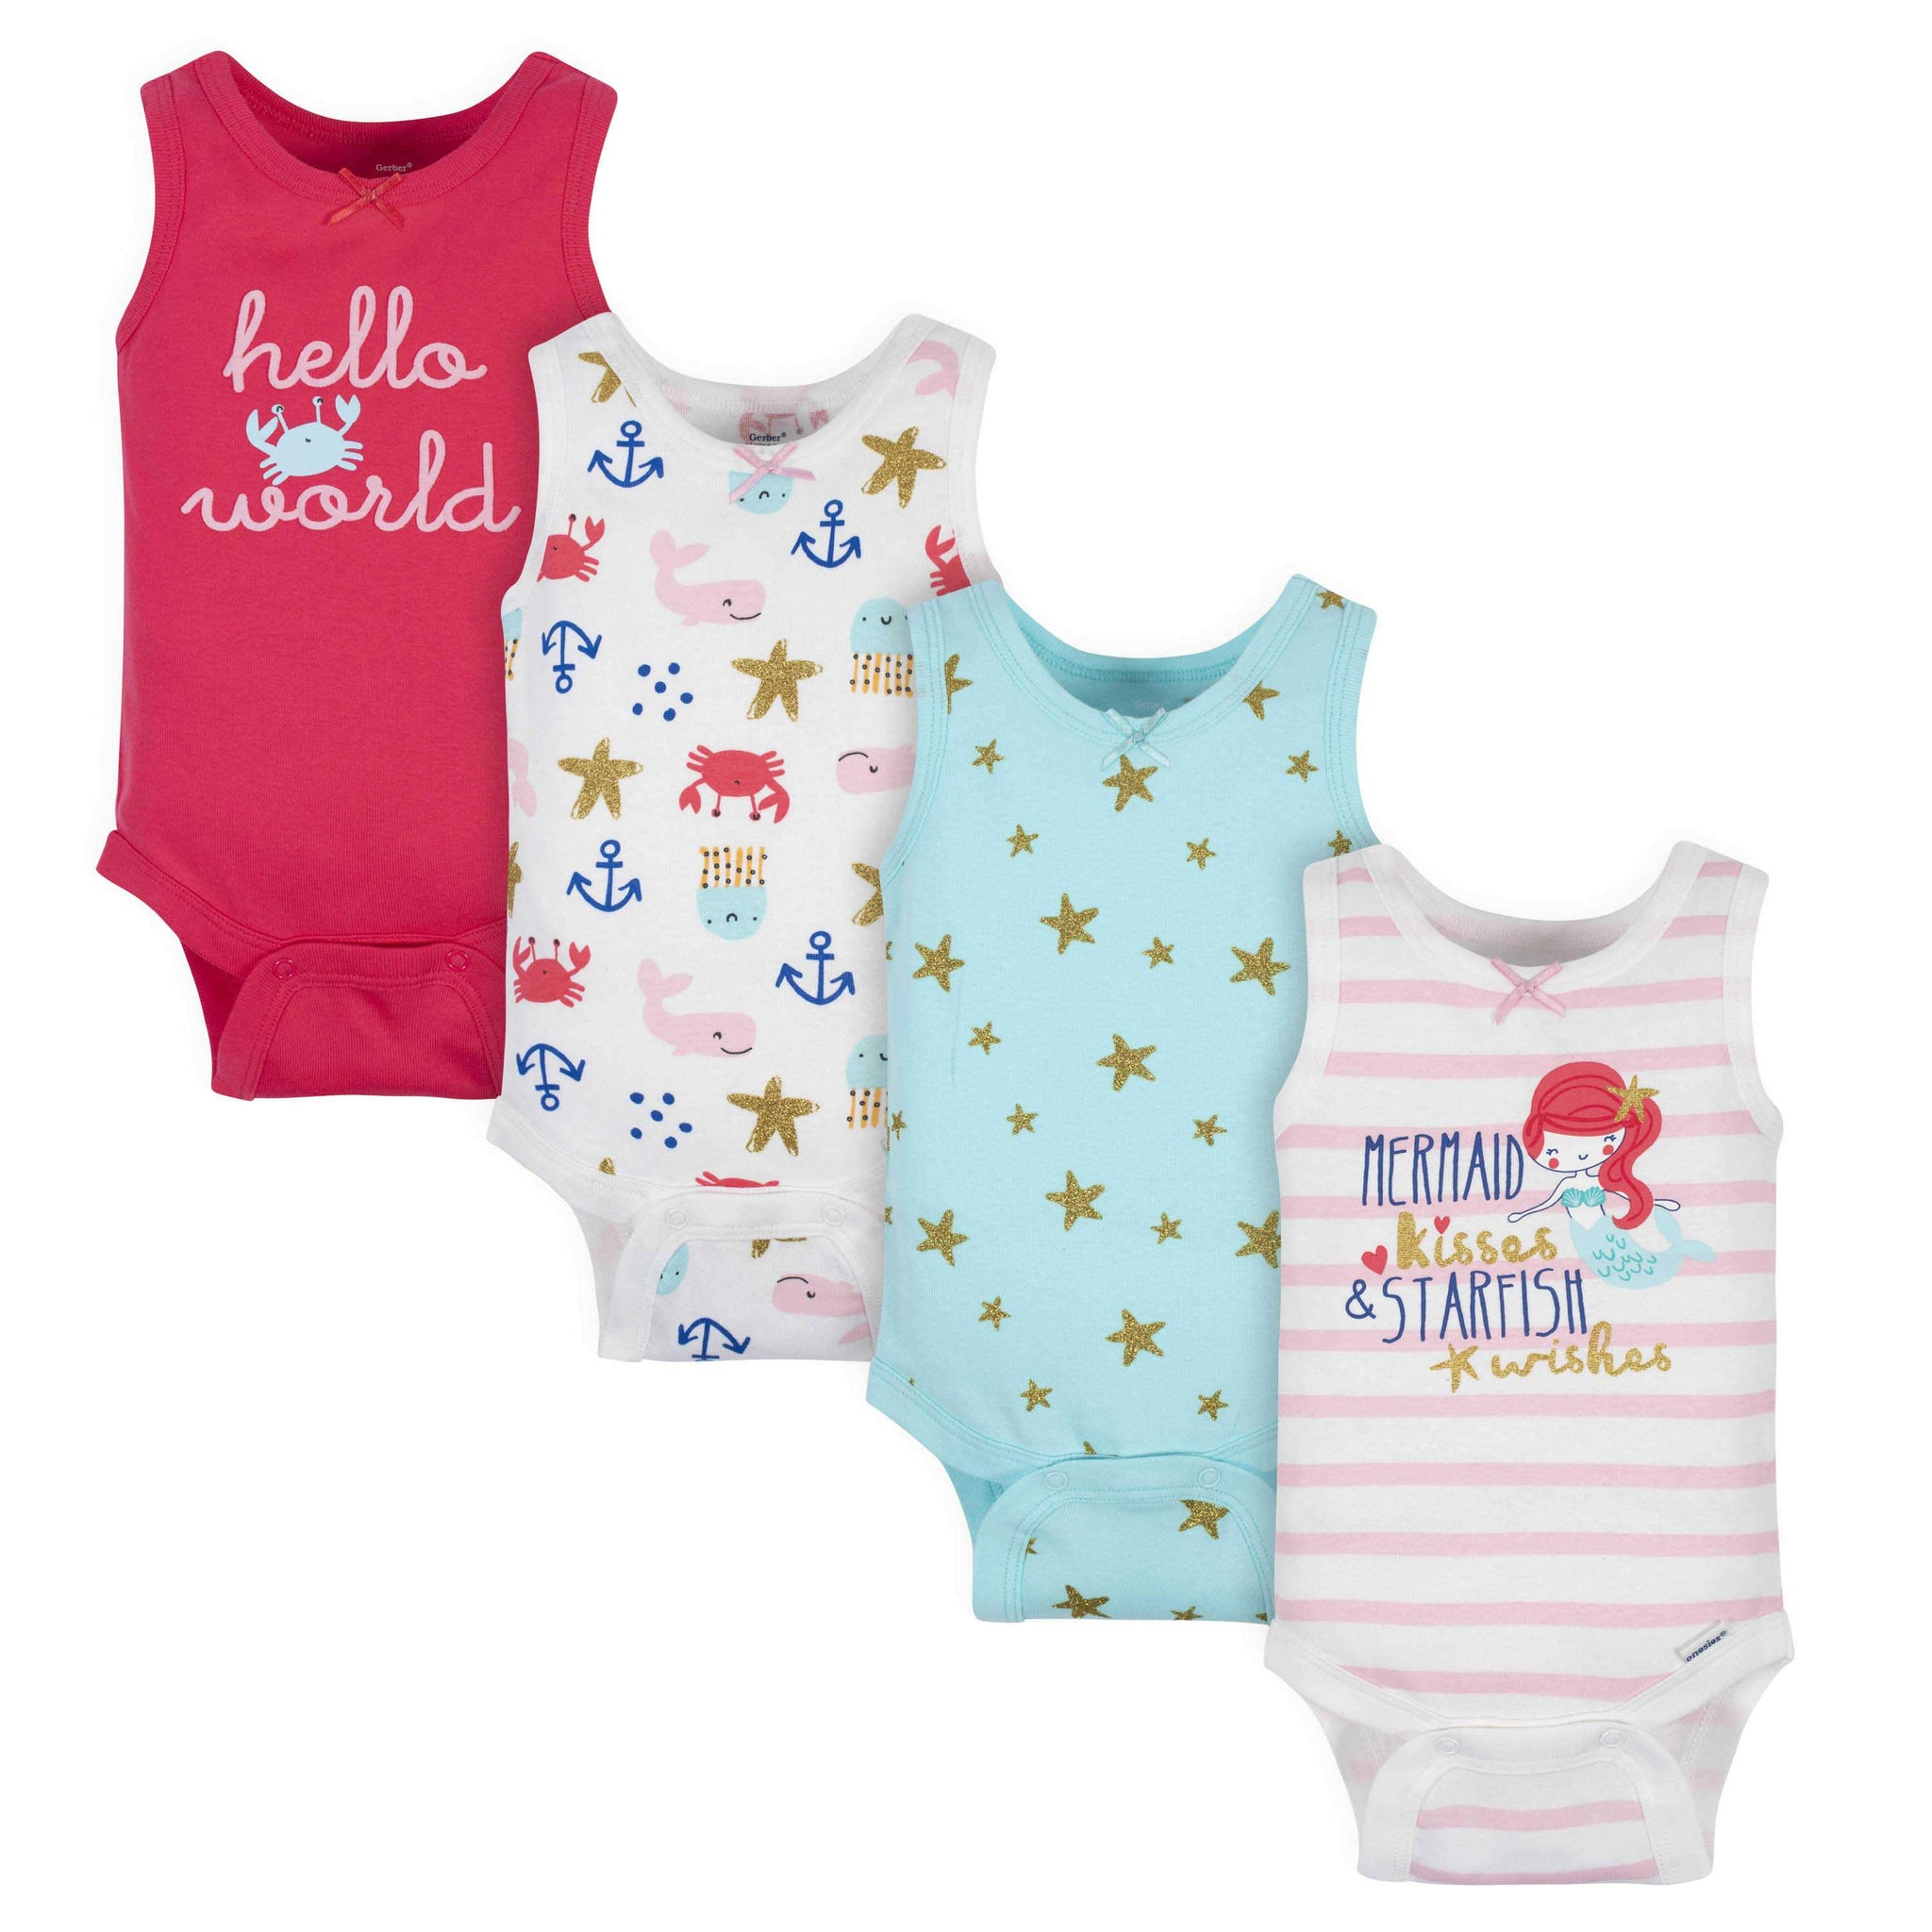 4-Pack Baby Girls Sea Creatures Tank Onesies Bodysuits